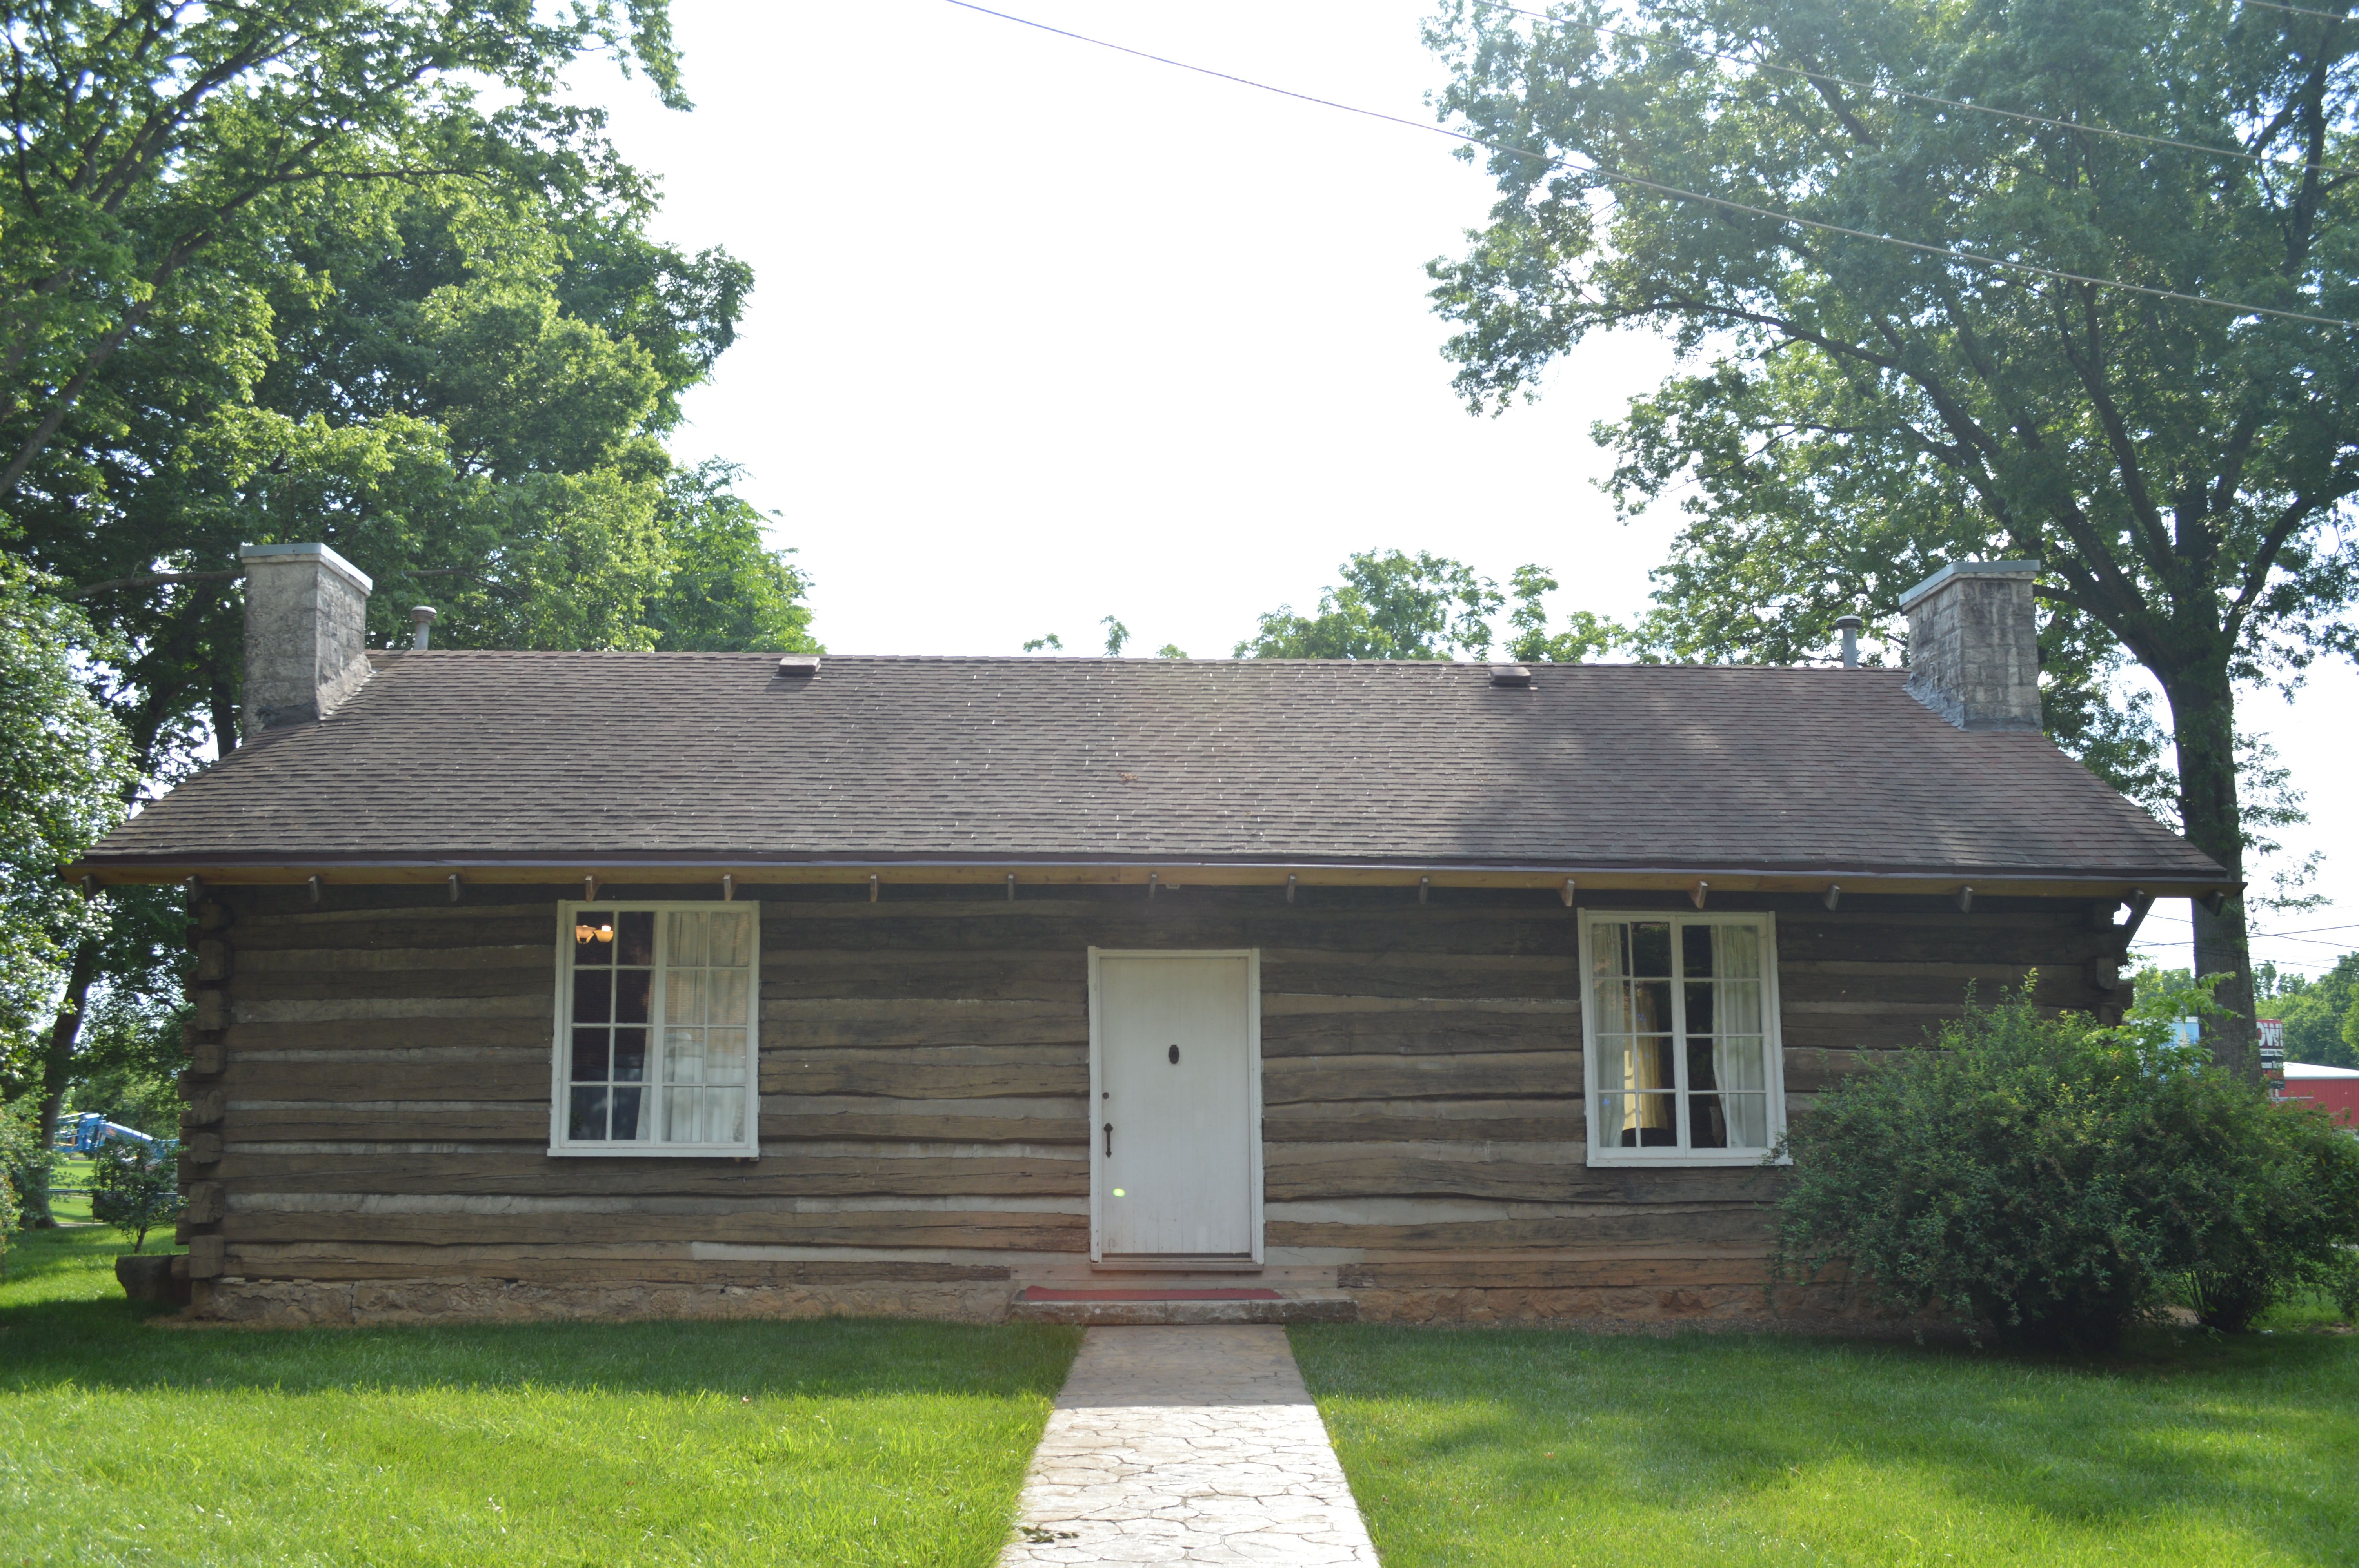 KFP moves to the Pioneer Log Cabin – Kentucky Folklife Program